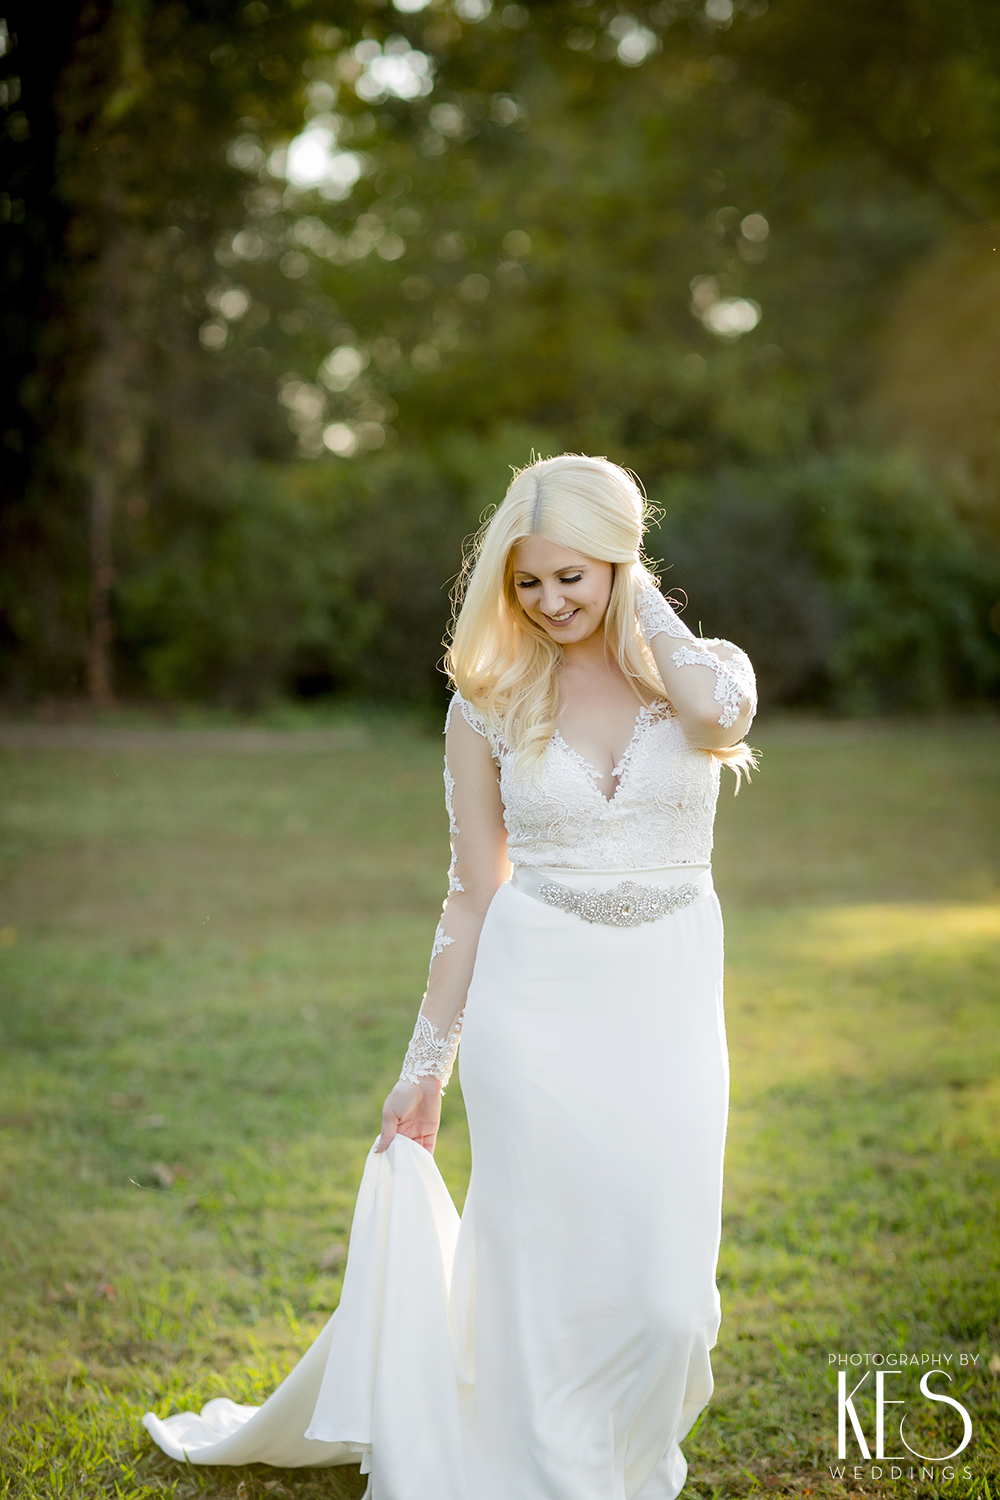 Marlsgate_Bridals_KES_Weddings_24.JPG